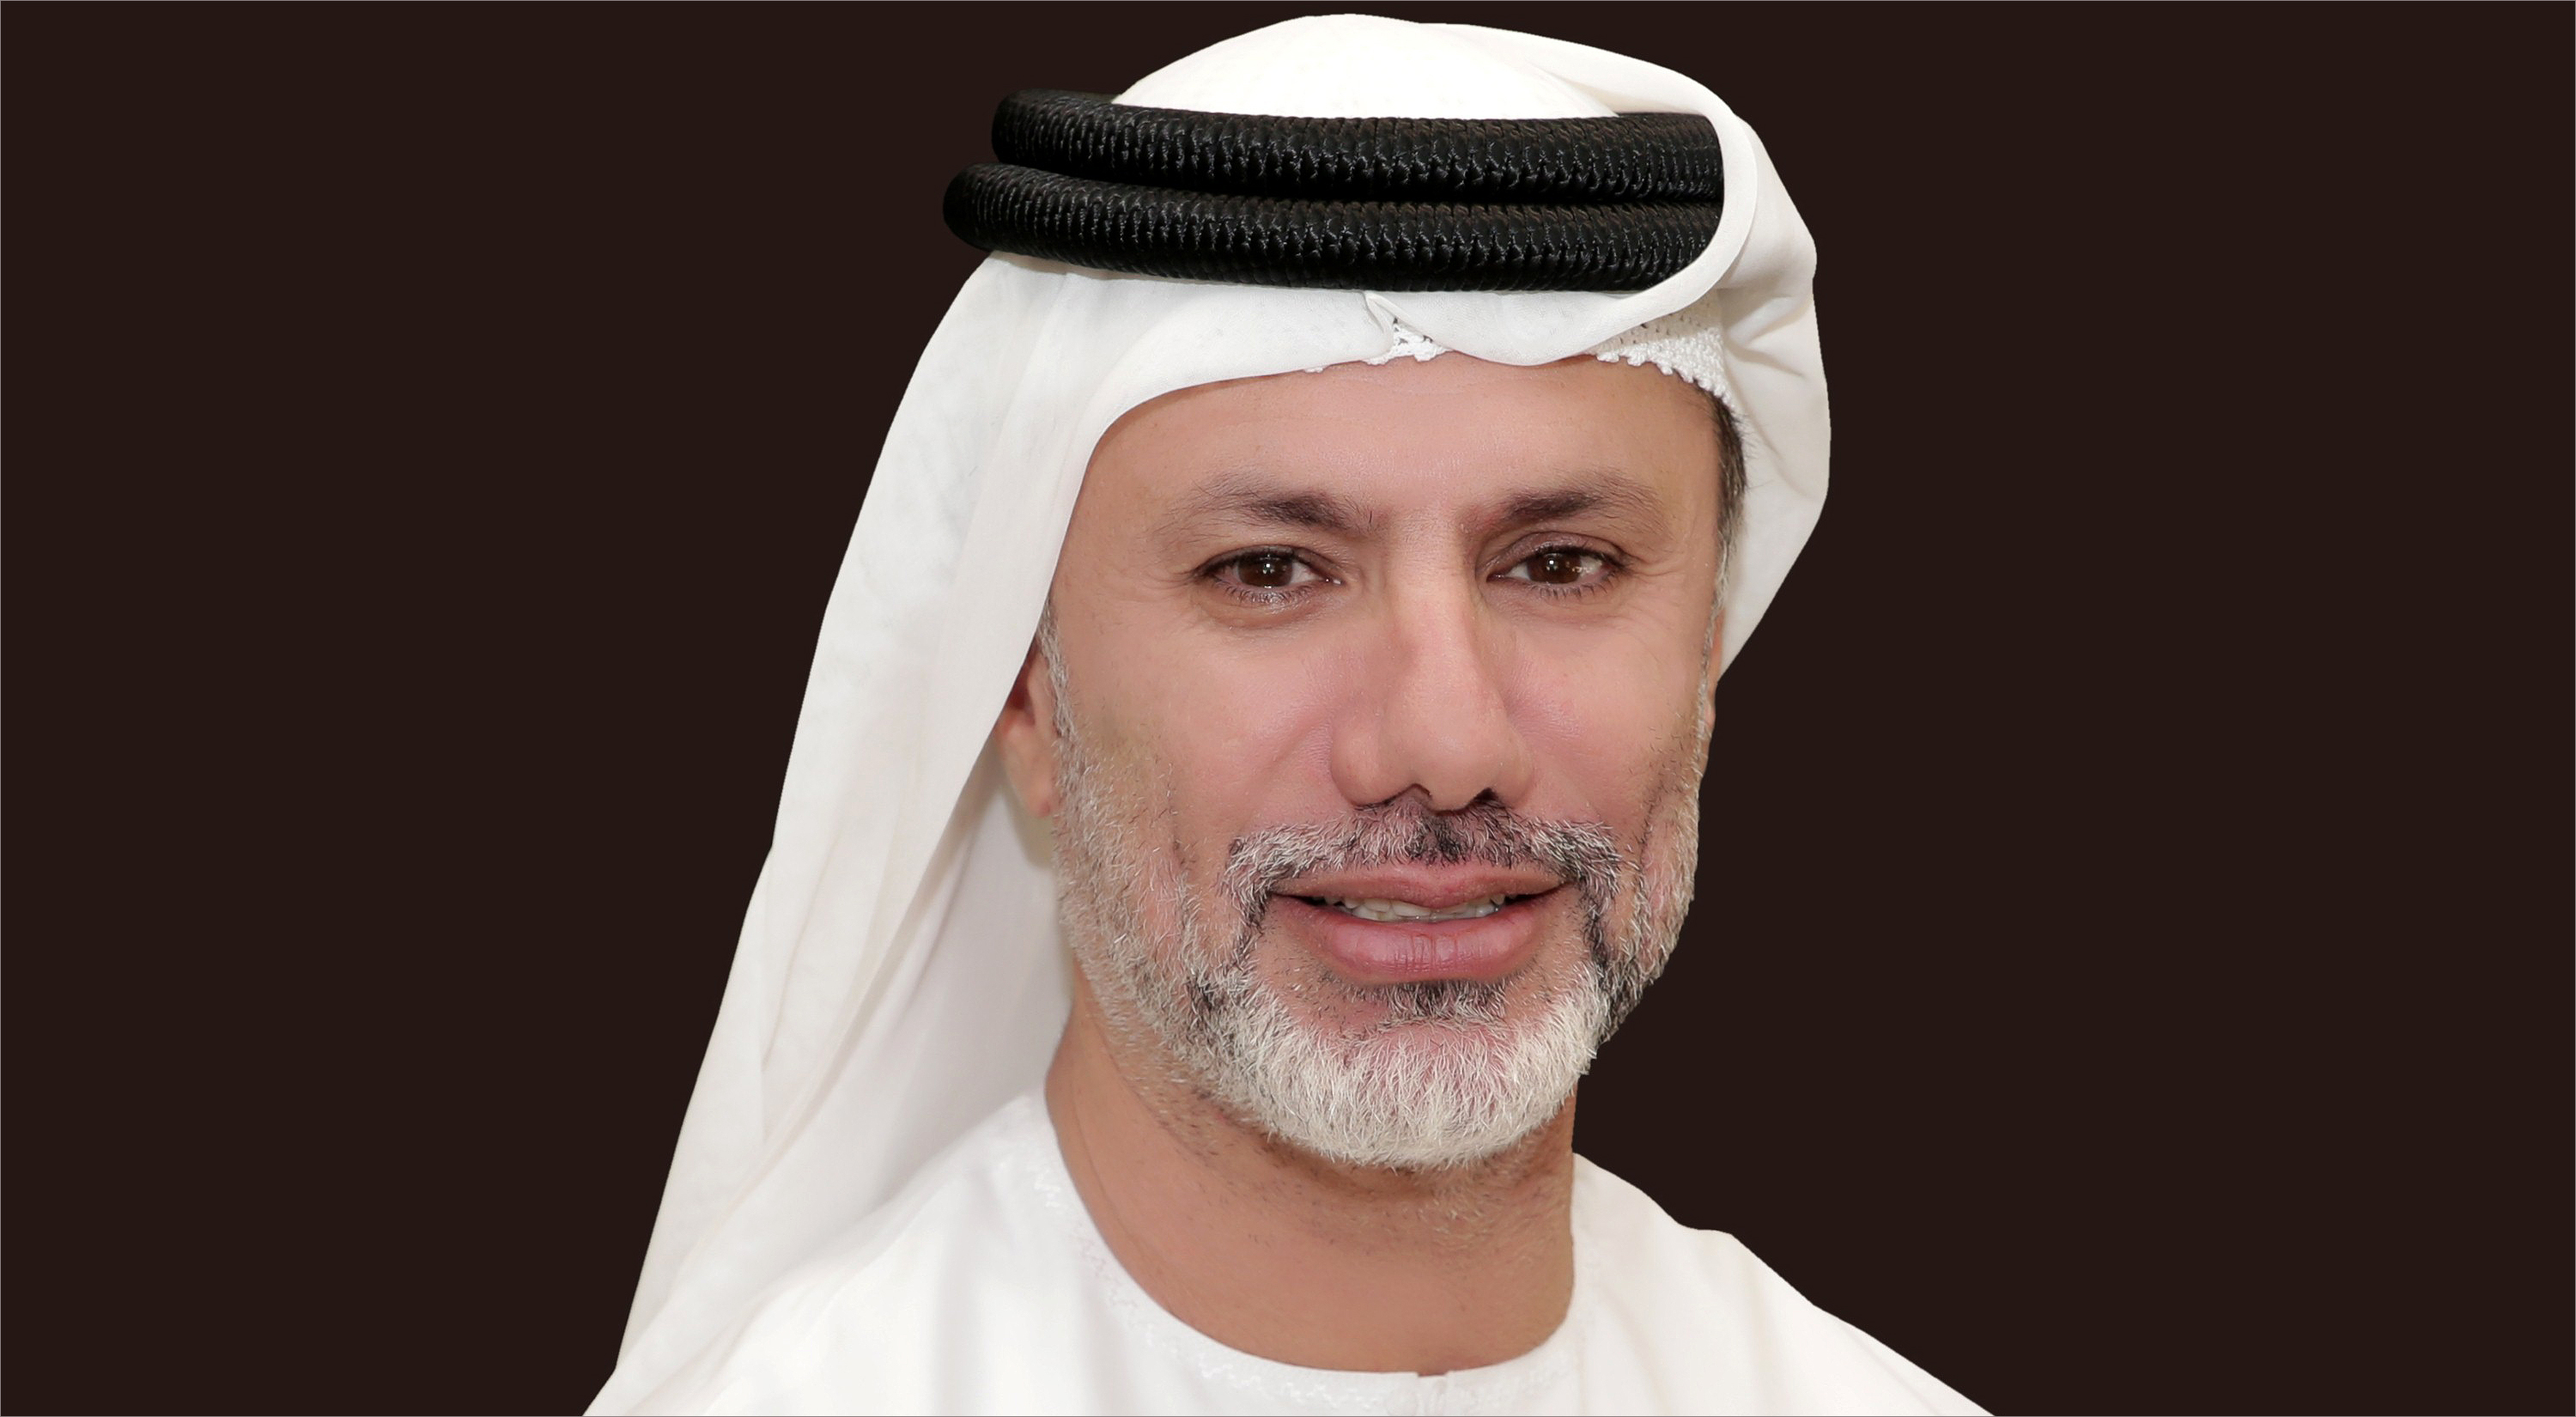 Dubai Municipality selects software defined from Dell EMC for smart city roll out